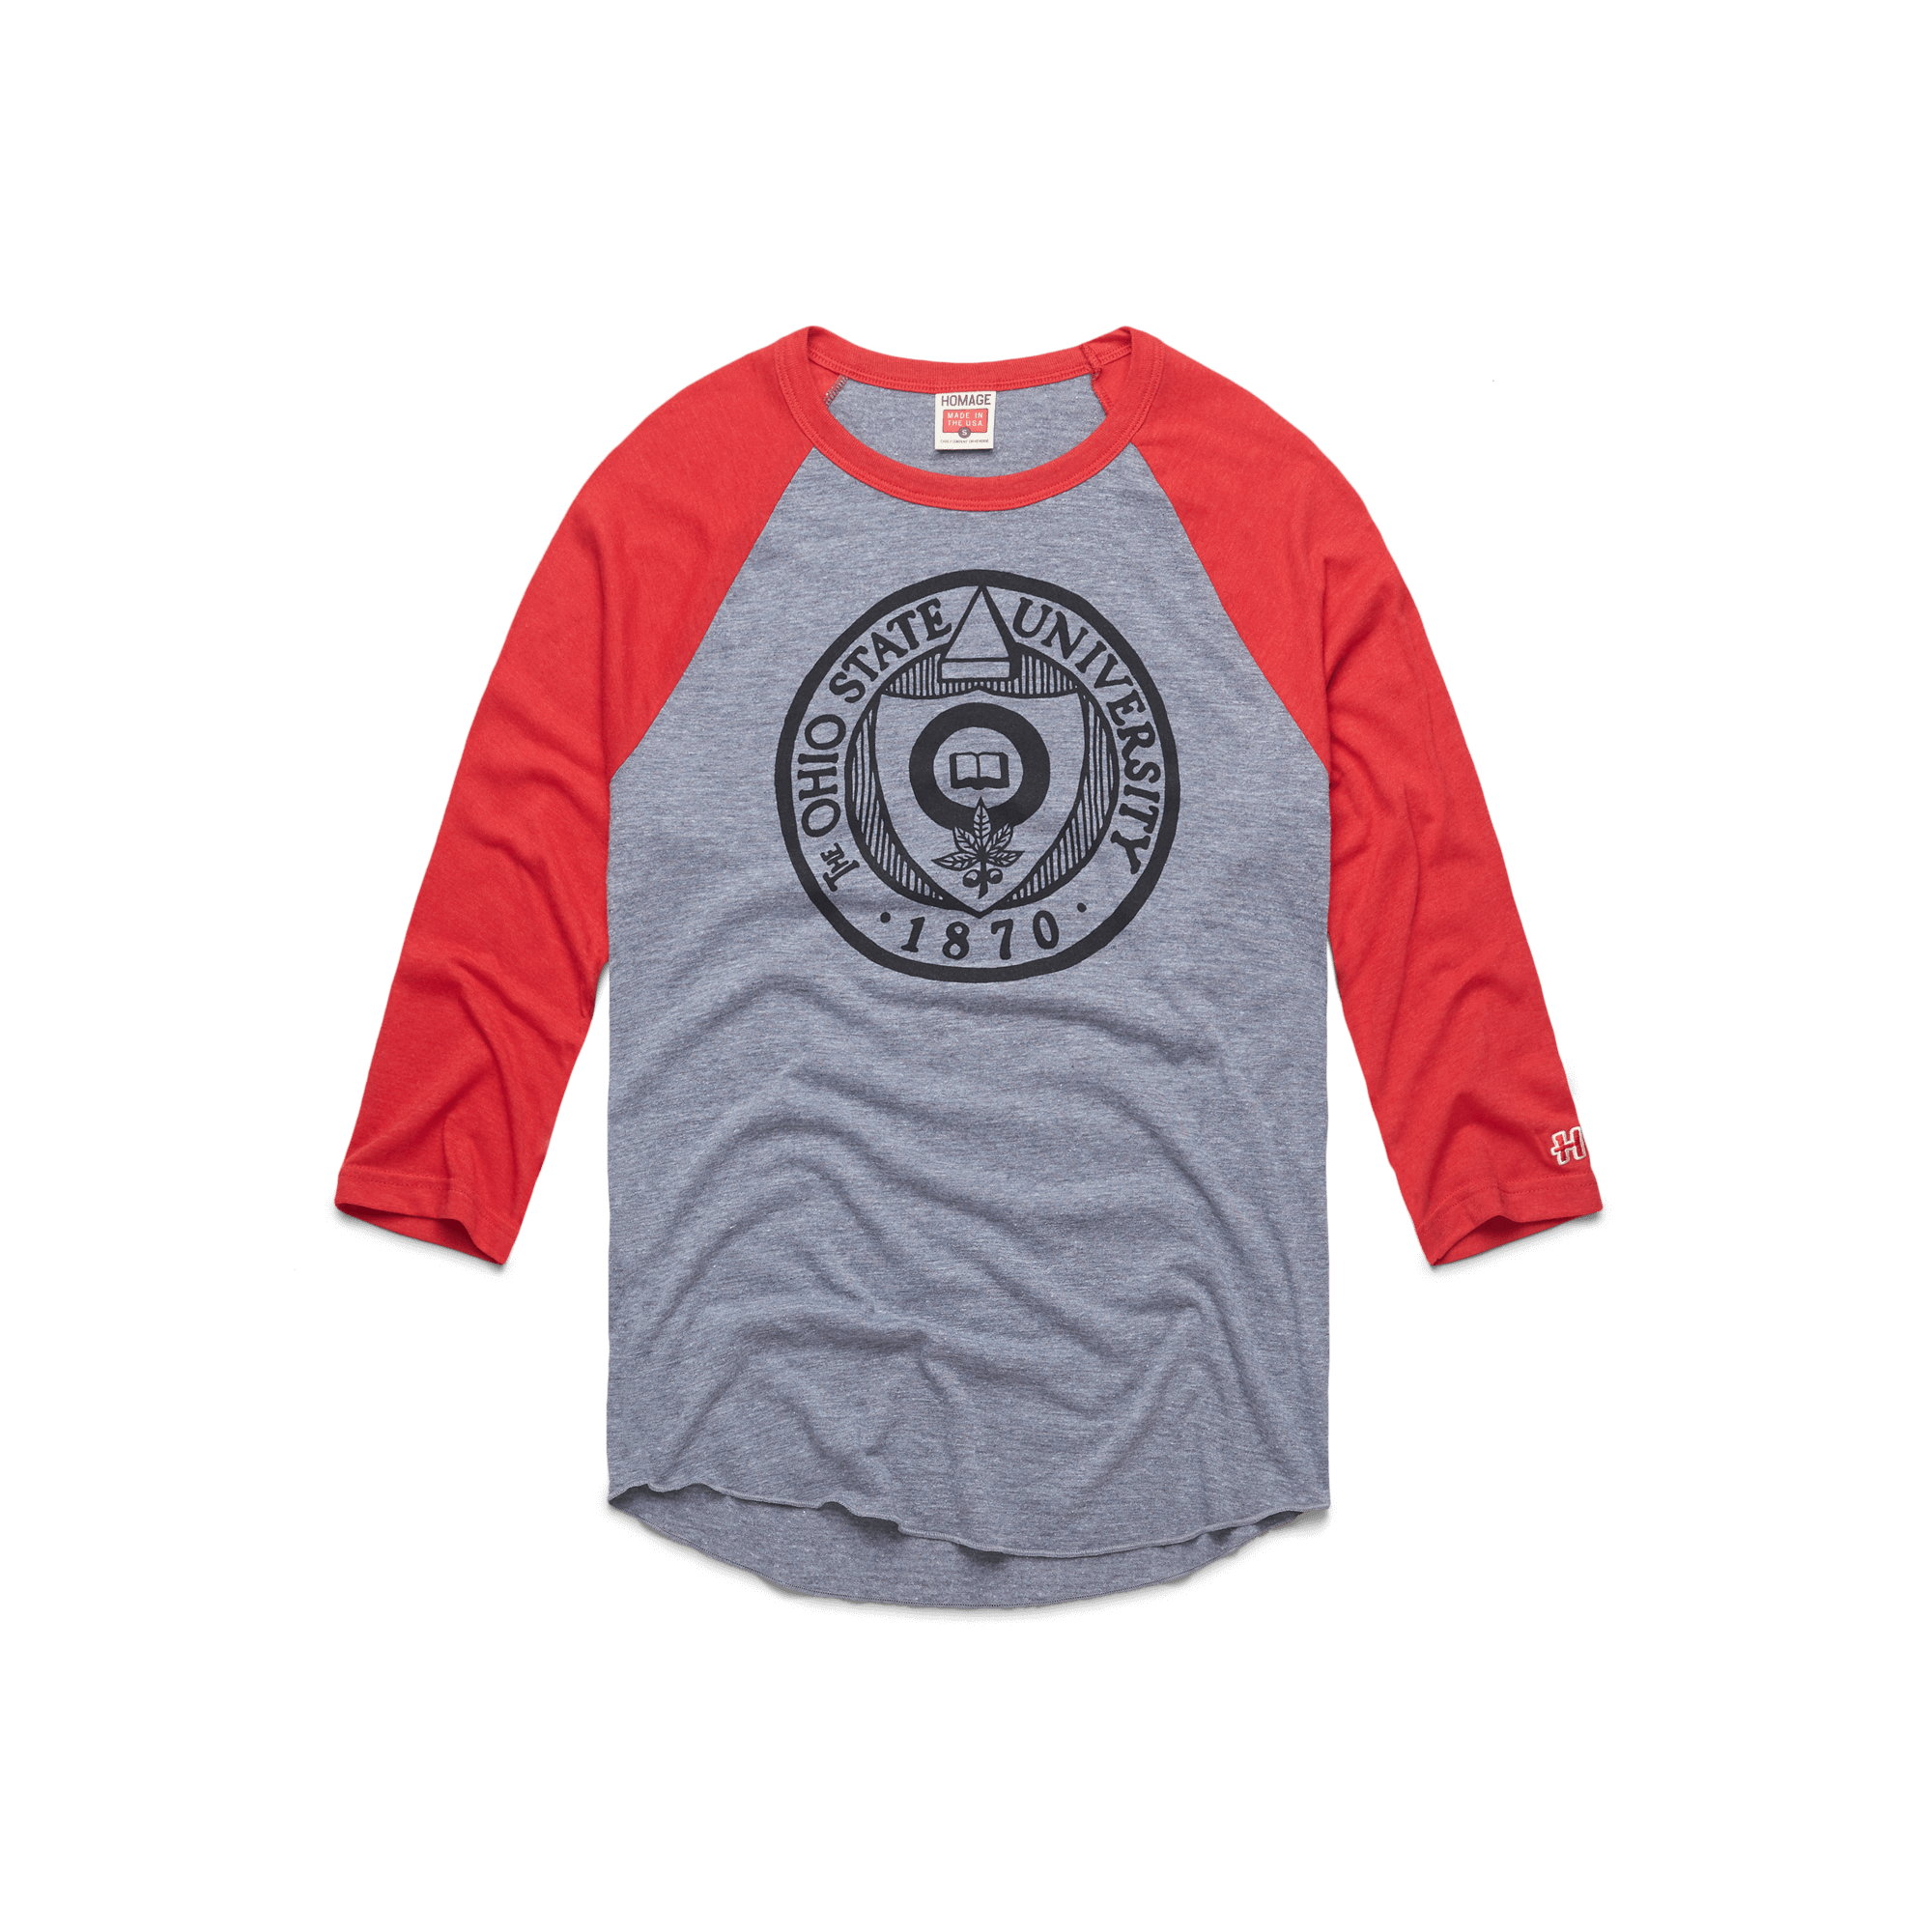 97cb9f417 Retro Ohio State University OSU Buckeyes Vintage Inspired Apparel – HOMAGE